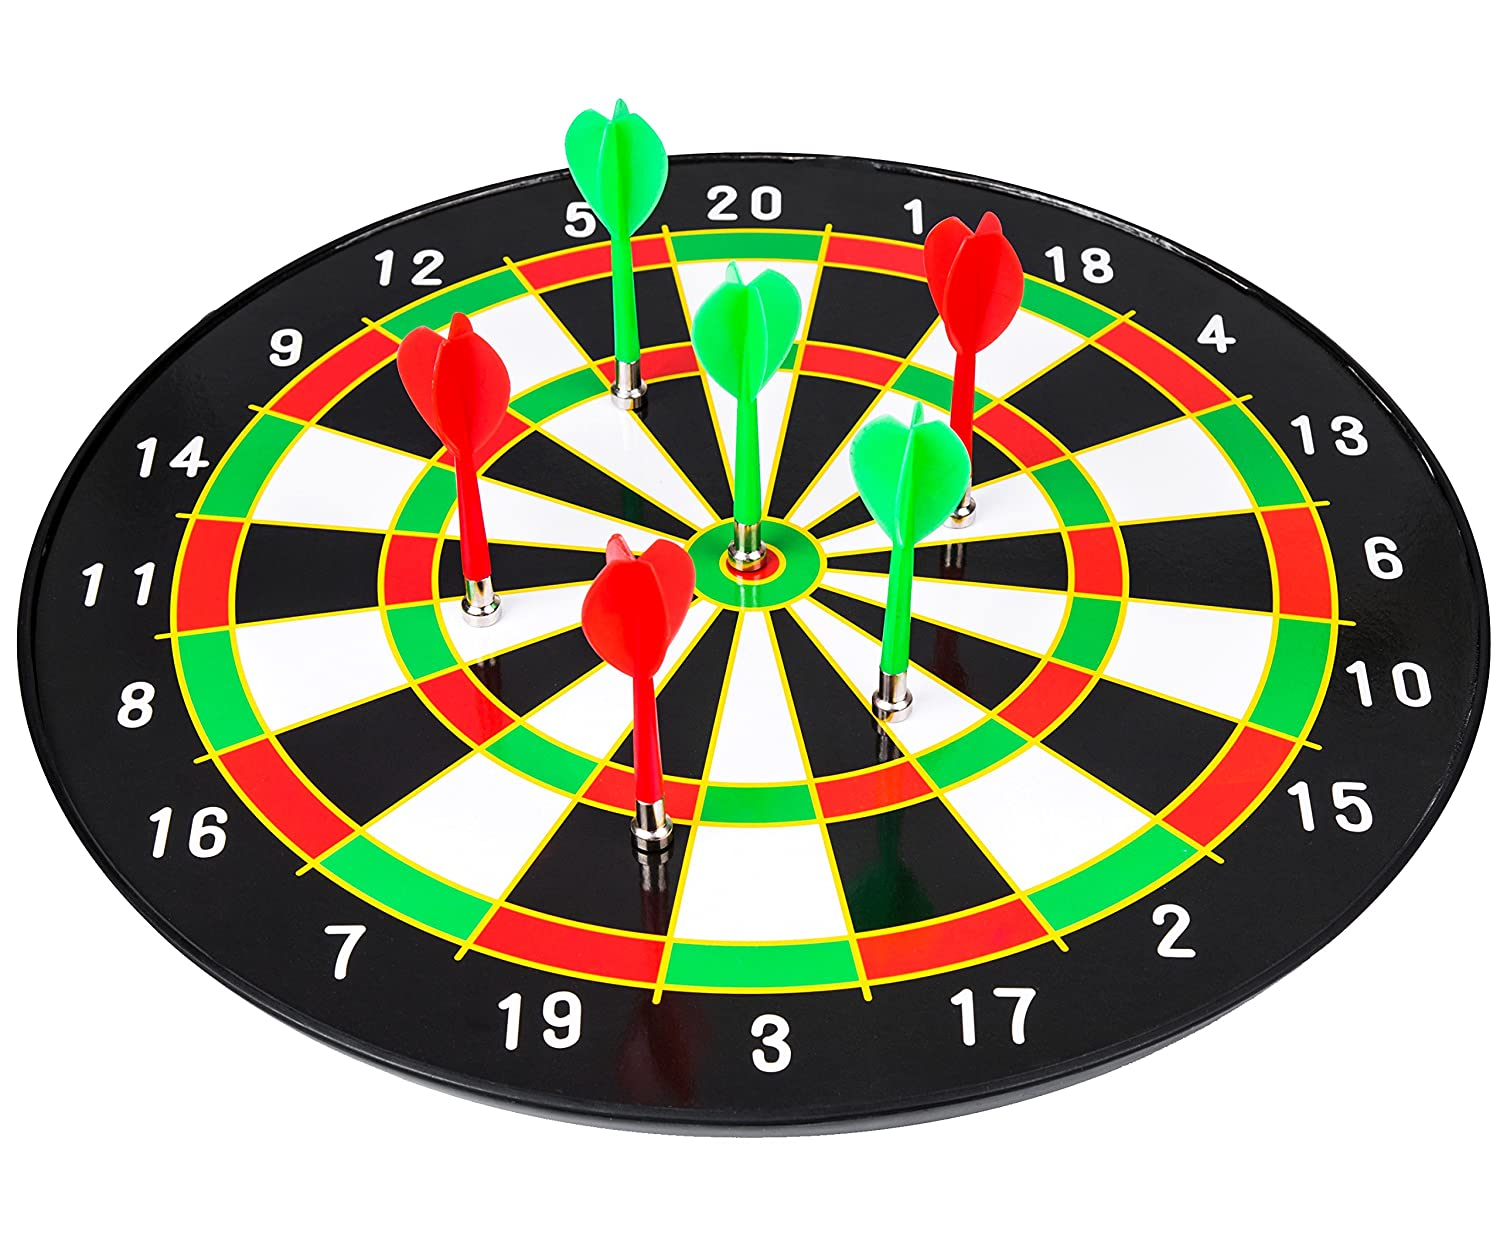 The Best Dart Board for Parties